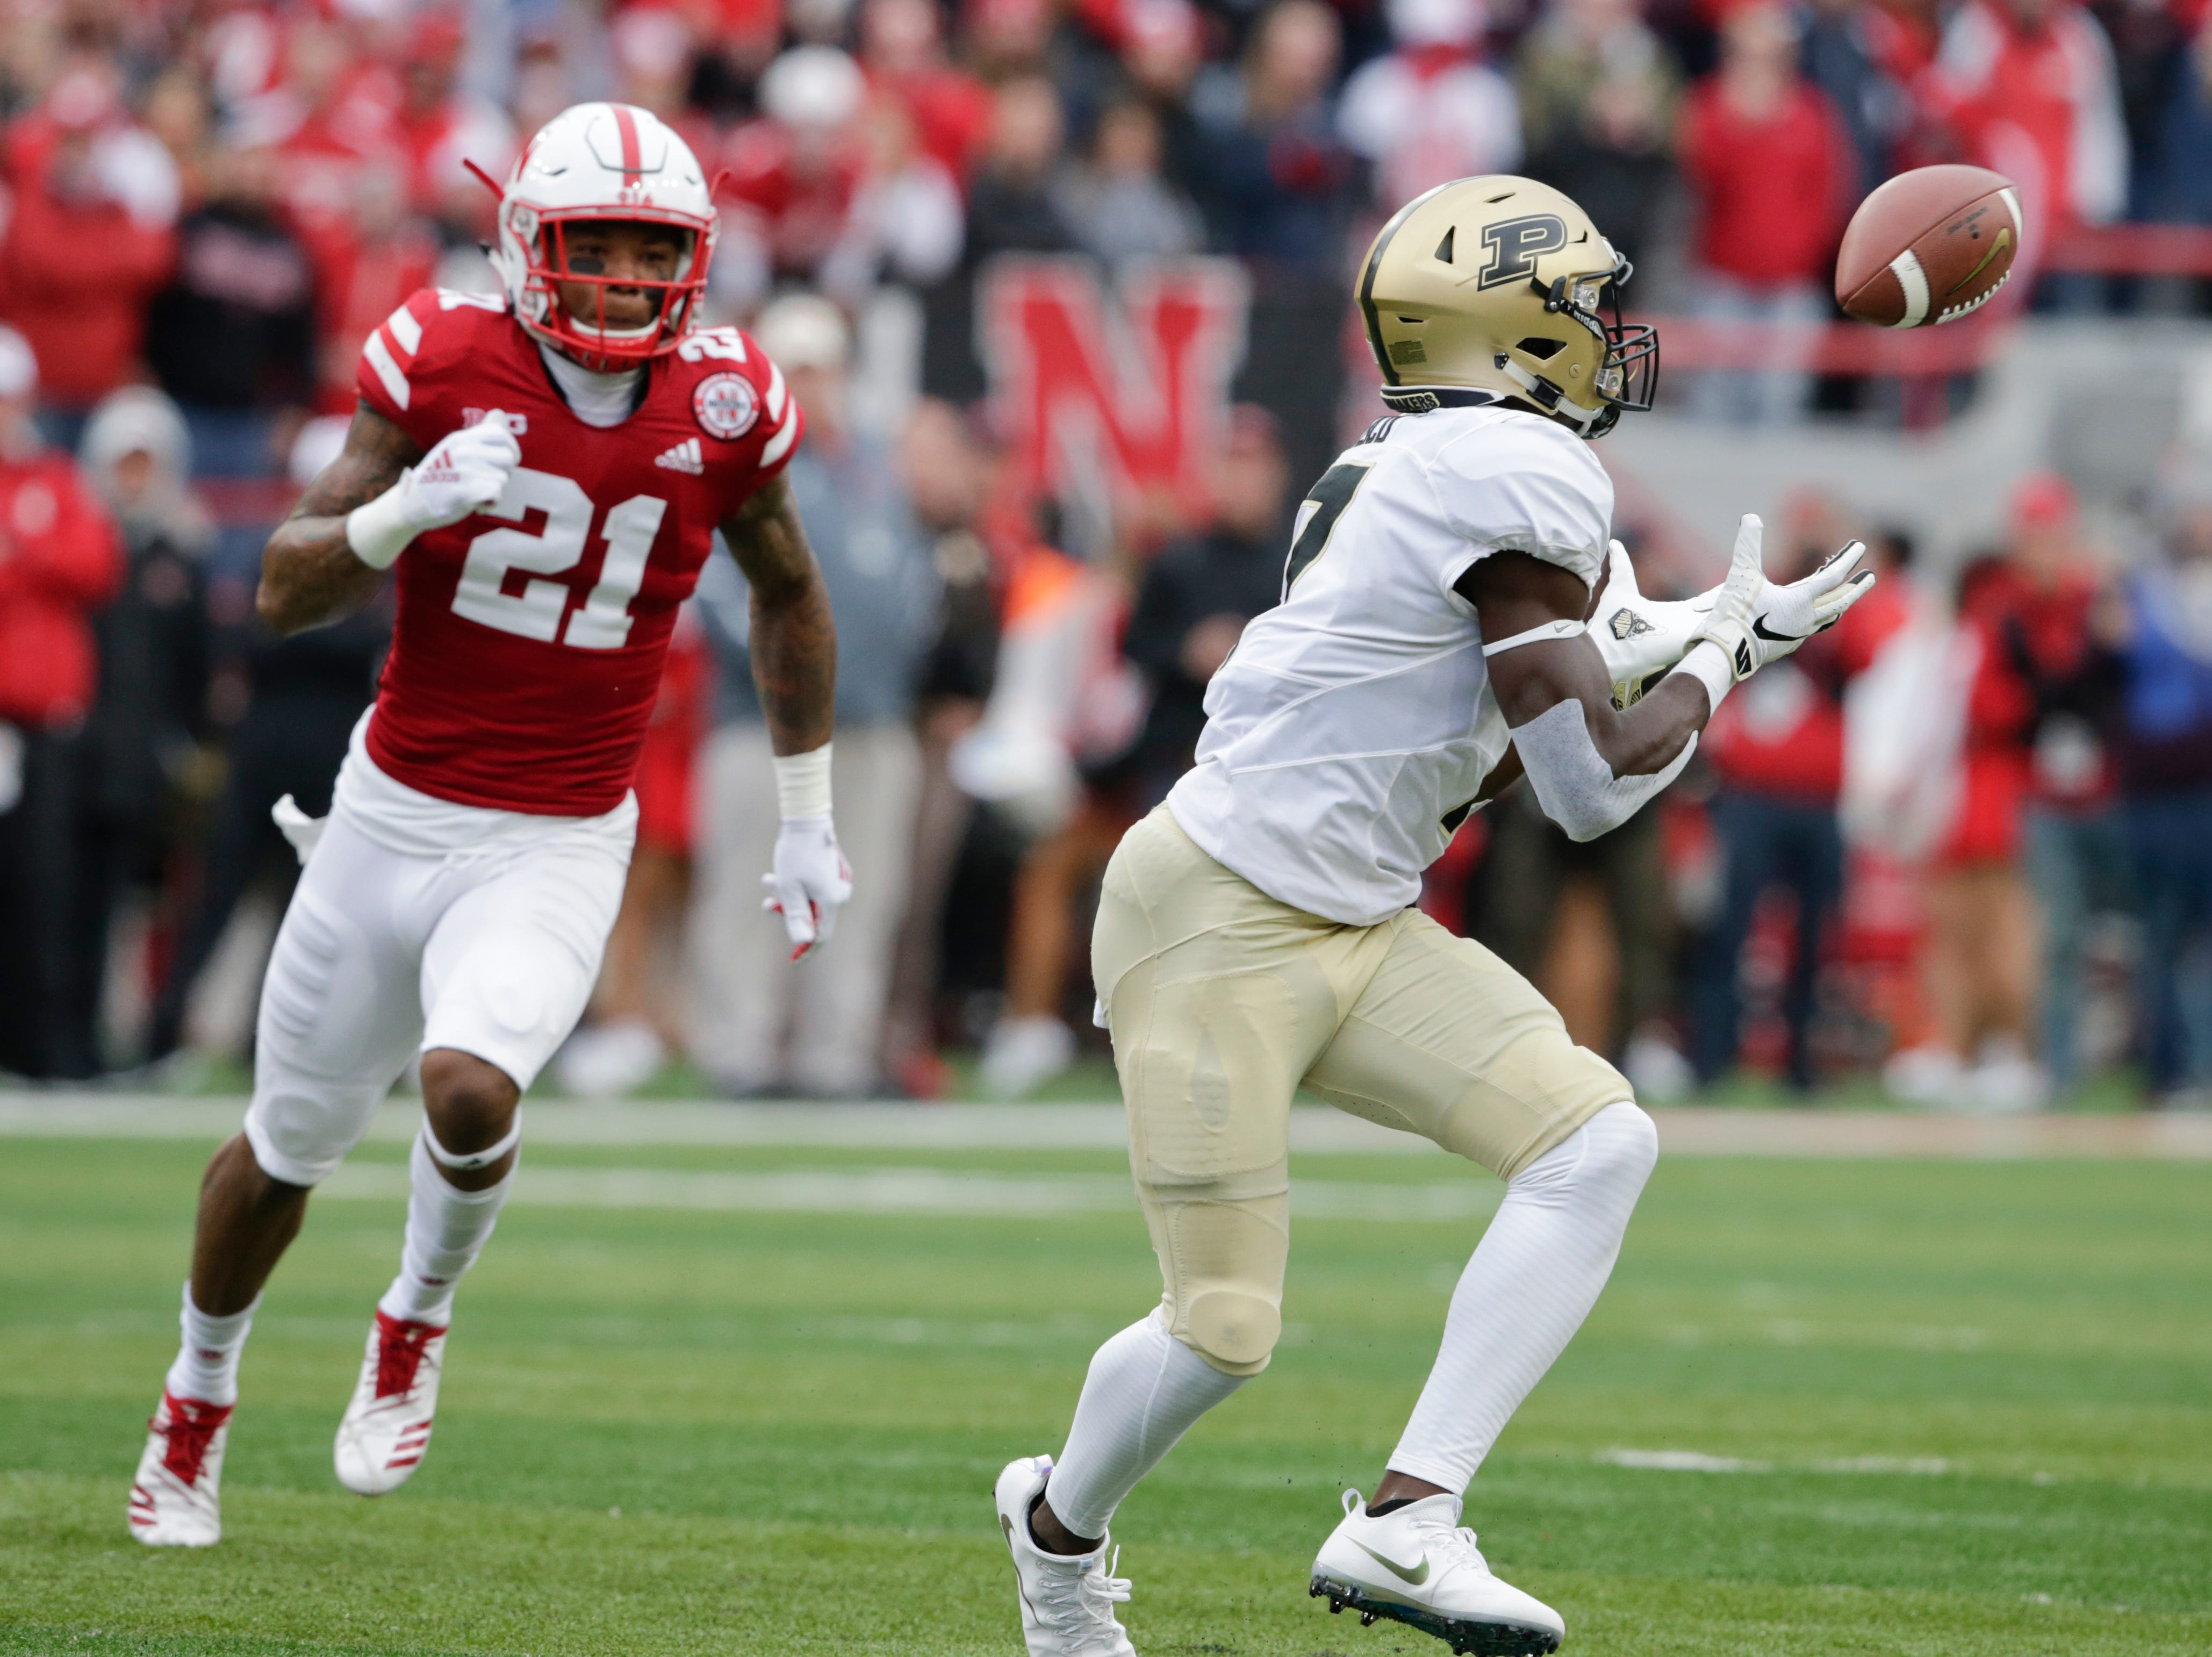 Purdue wide receiver Isaac Zico (7) makes a catch in front of Nebraska defensive back Lamar Jackson (21) during the first half of an NCAA college football game in Lincoln, Neb., Saturday, Sept. 29, 2018. (AP Photo/Nati Harnik)